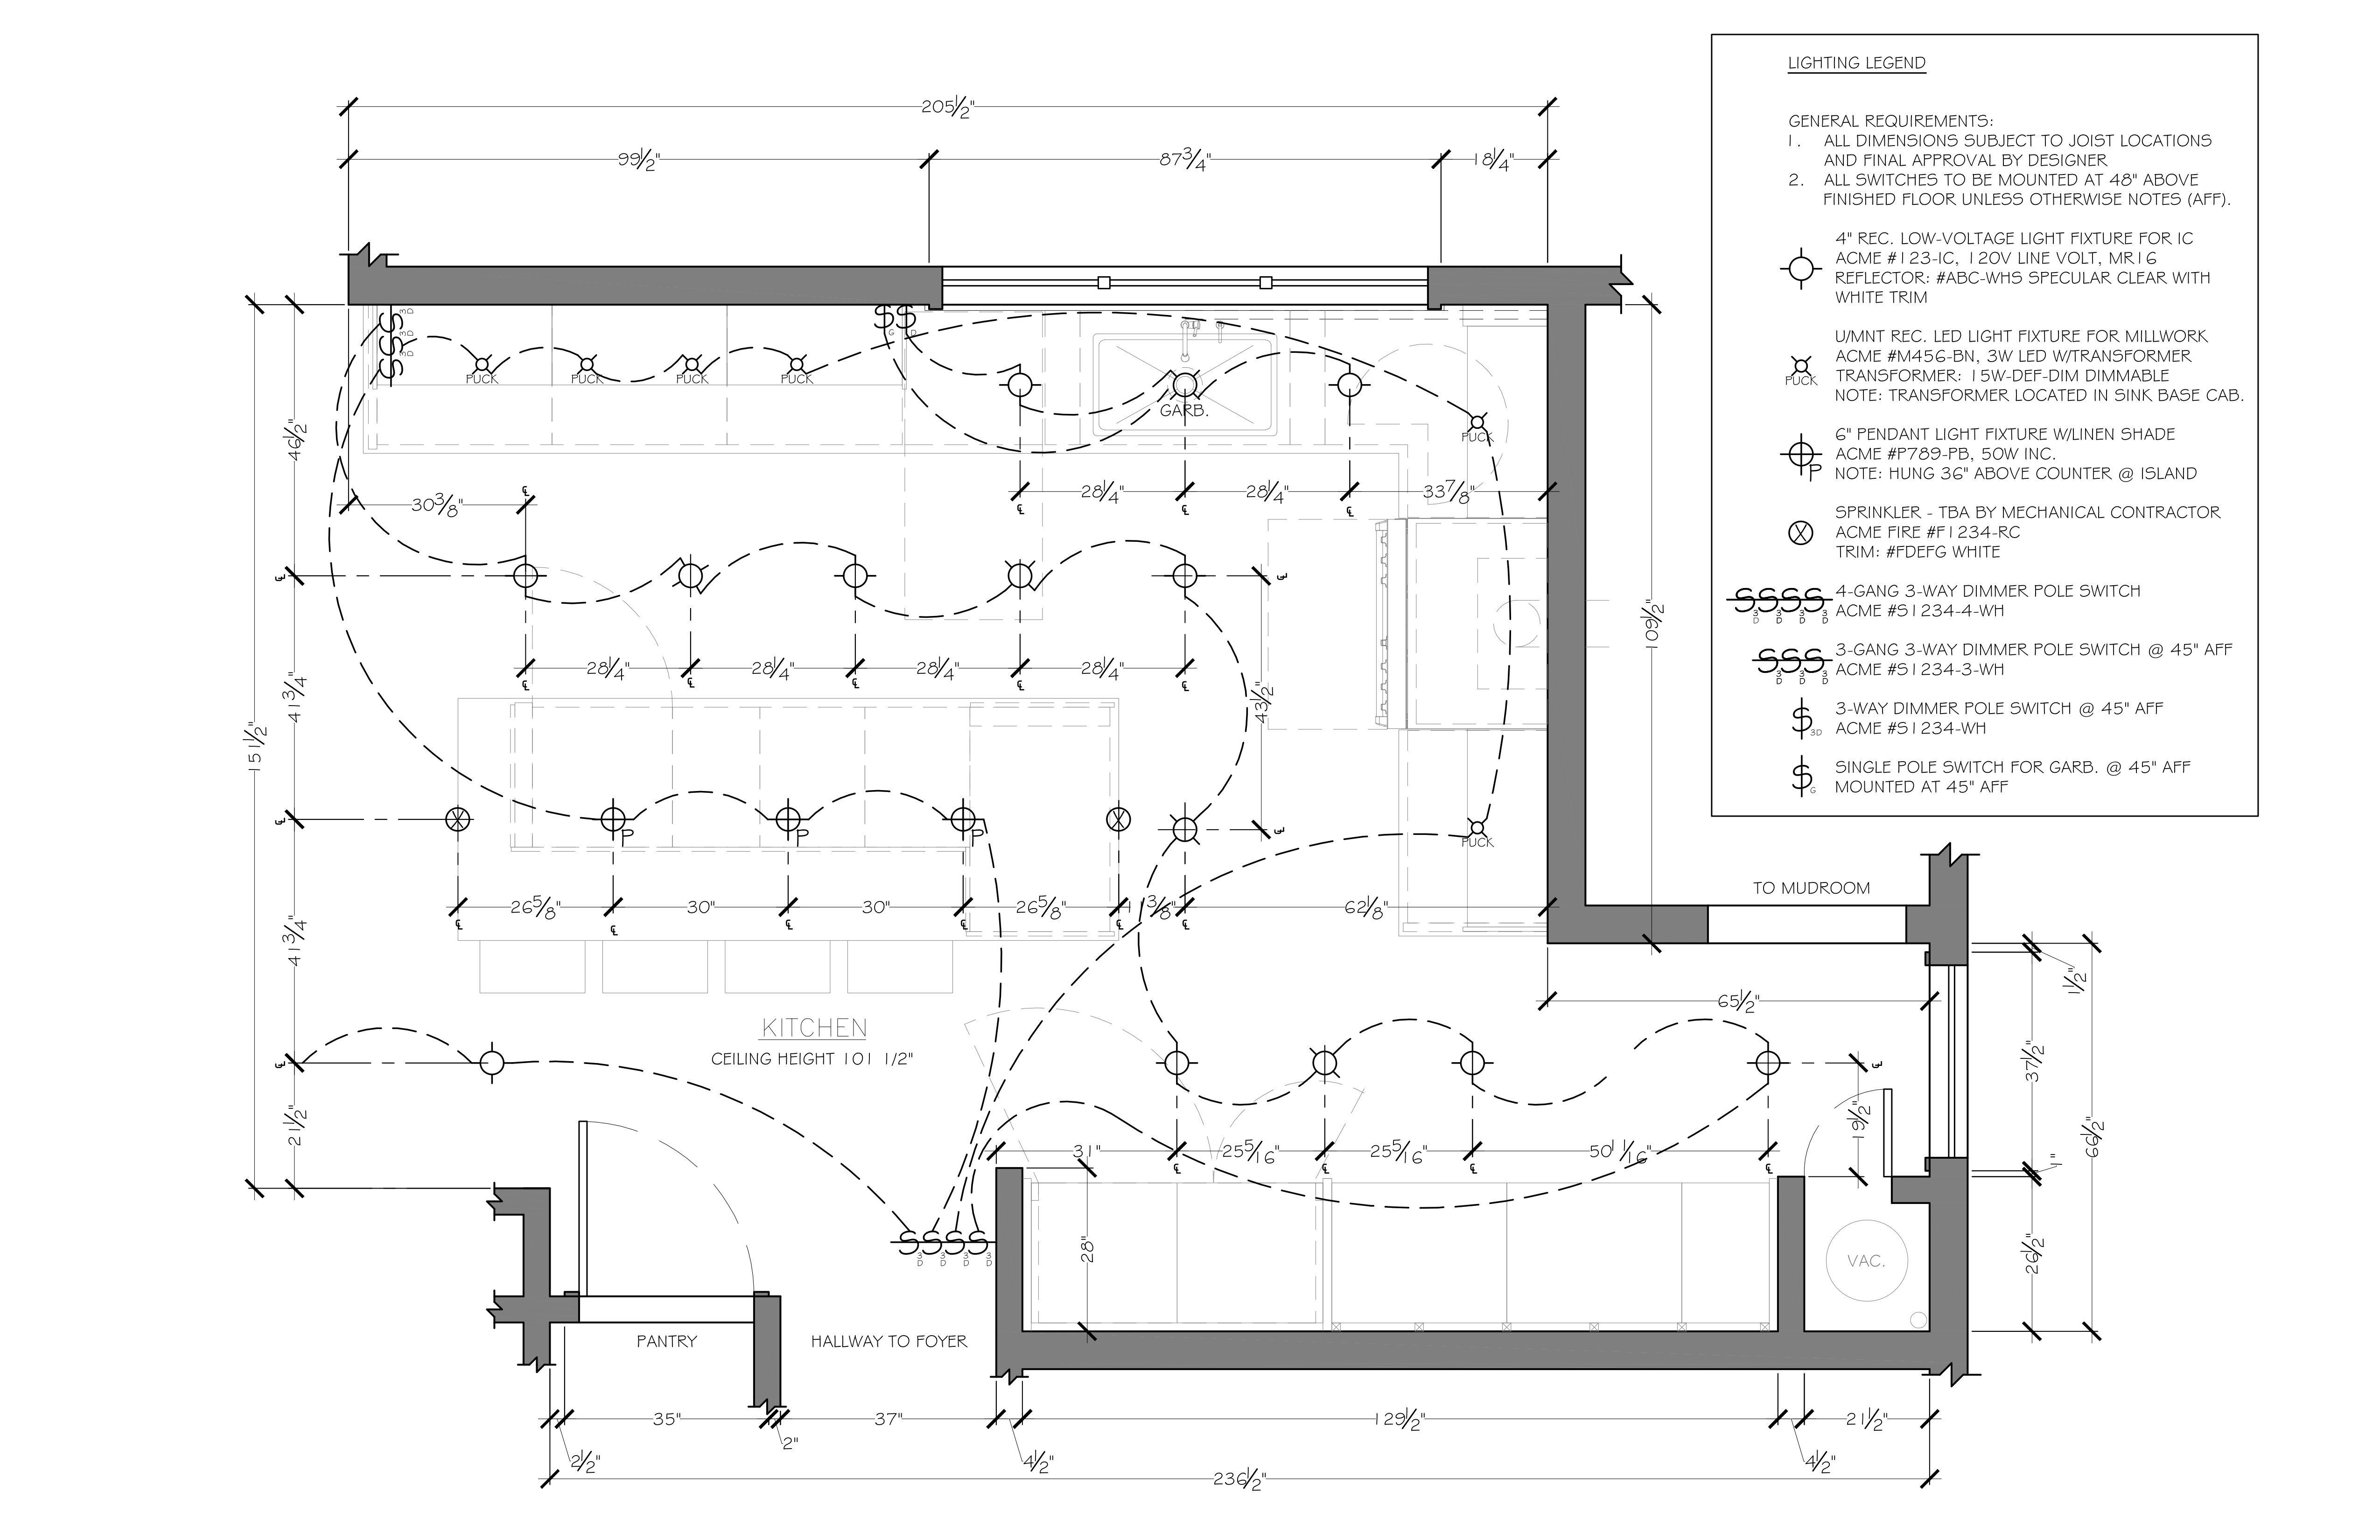 kitchen reflected ceiling plan example c 2013 corey klassen ckd used under permission from the national kitchen bath association [ 5100 x 3300 Pixel ]